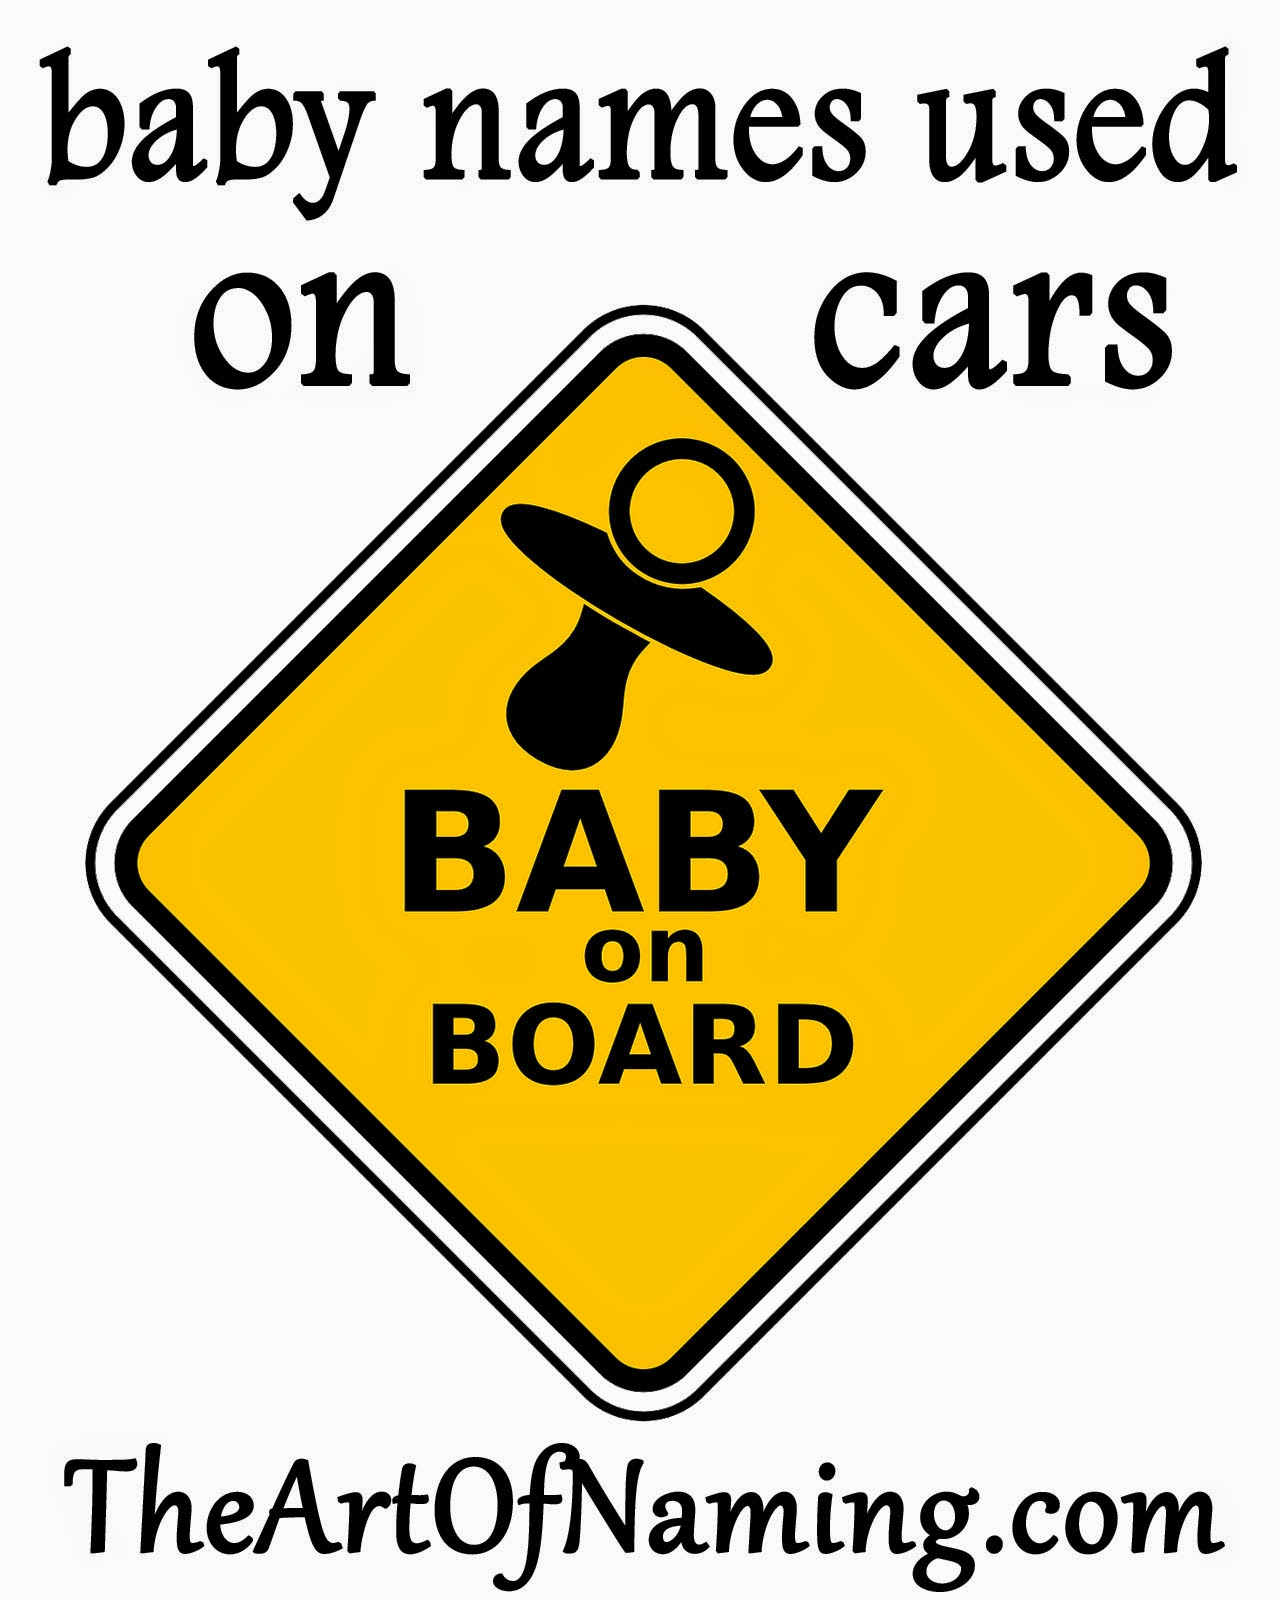 The Art Of Naming Potential BabyNames Used On Cars - Cars sign and names